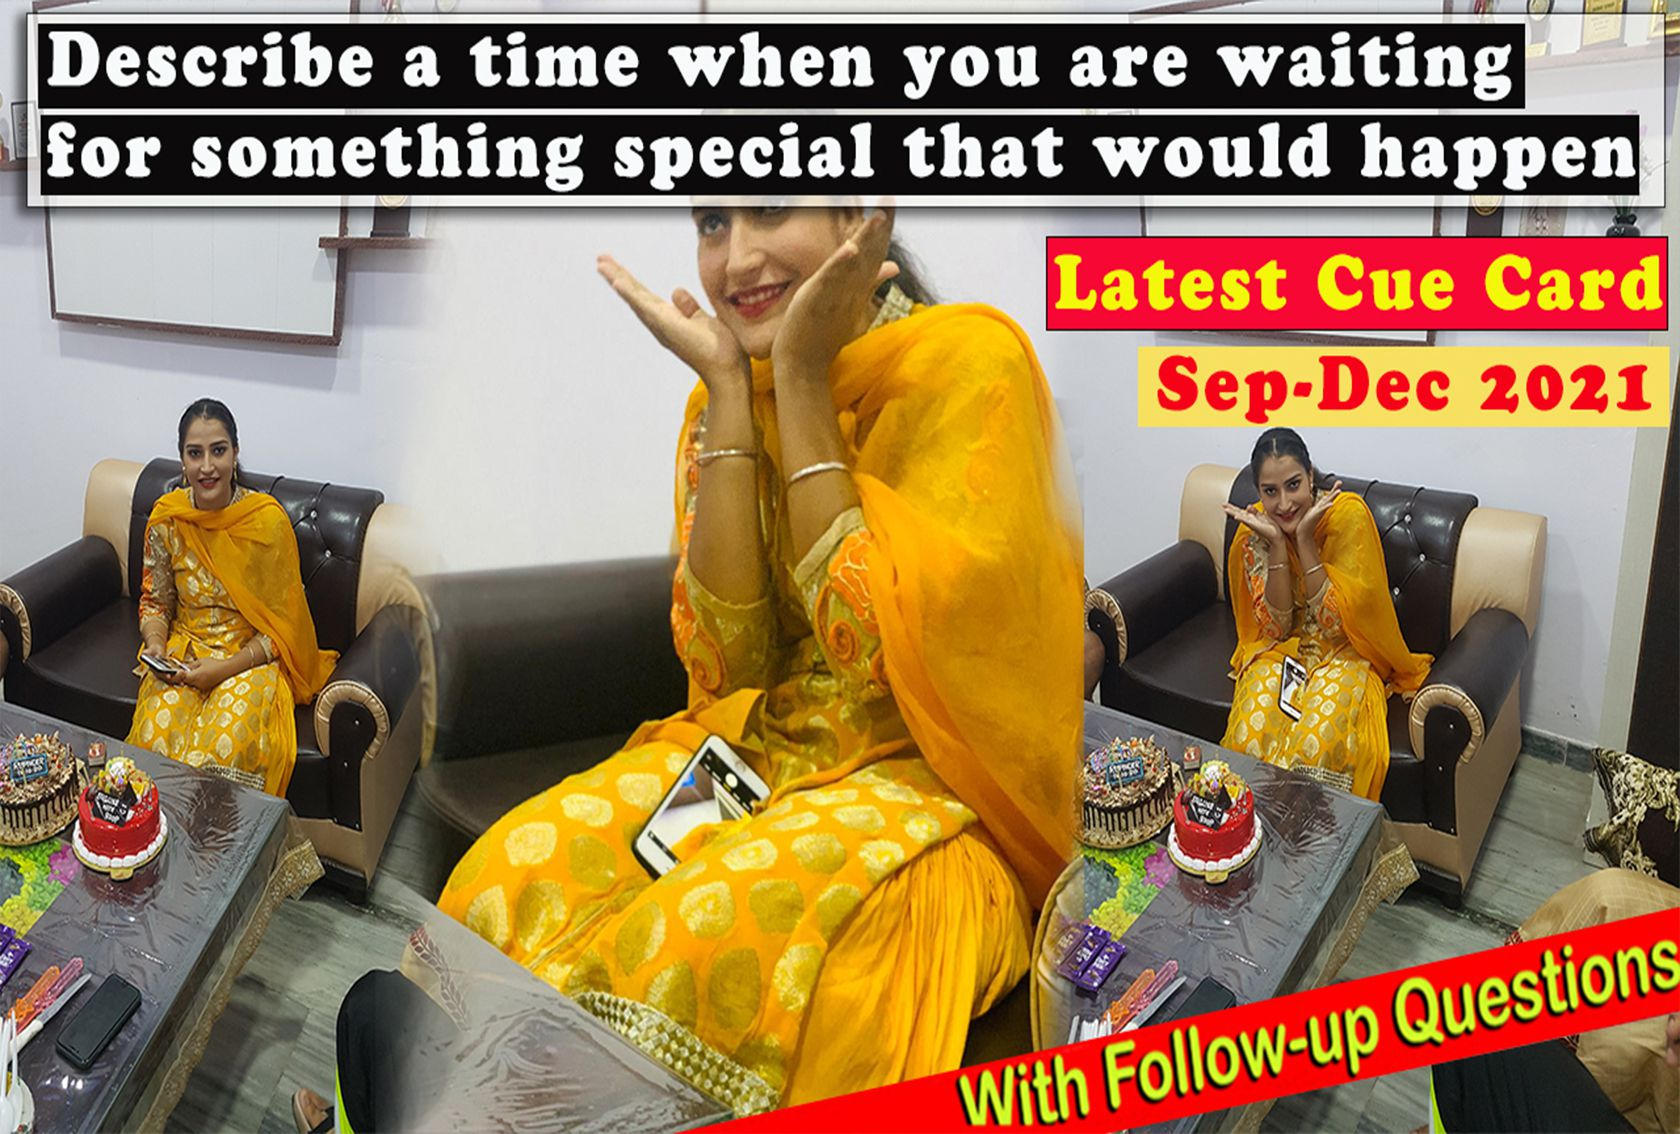 Describe a time when you are waiting for something special that would happen Cue Card